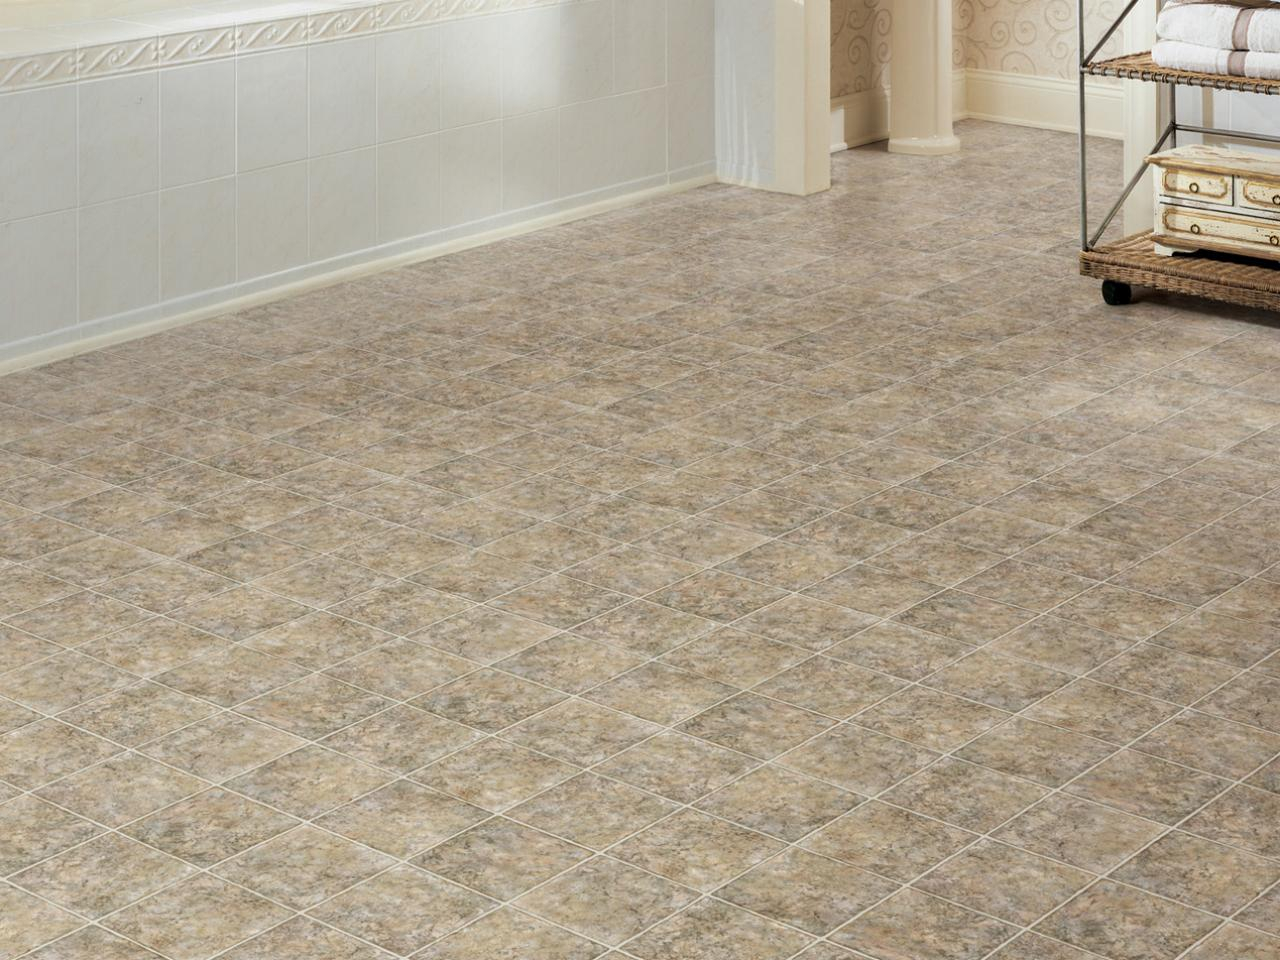 Inspirational Vinyl, Low Cost And Lovely | Hgtv throughout Easy To Install Bathroom Flooring